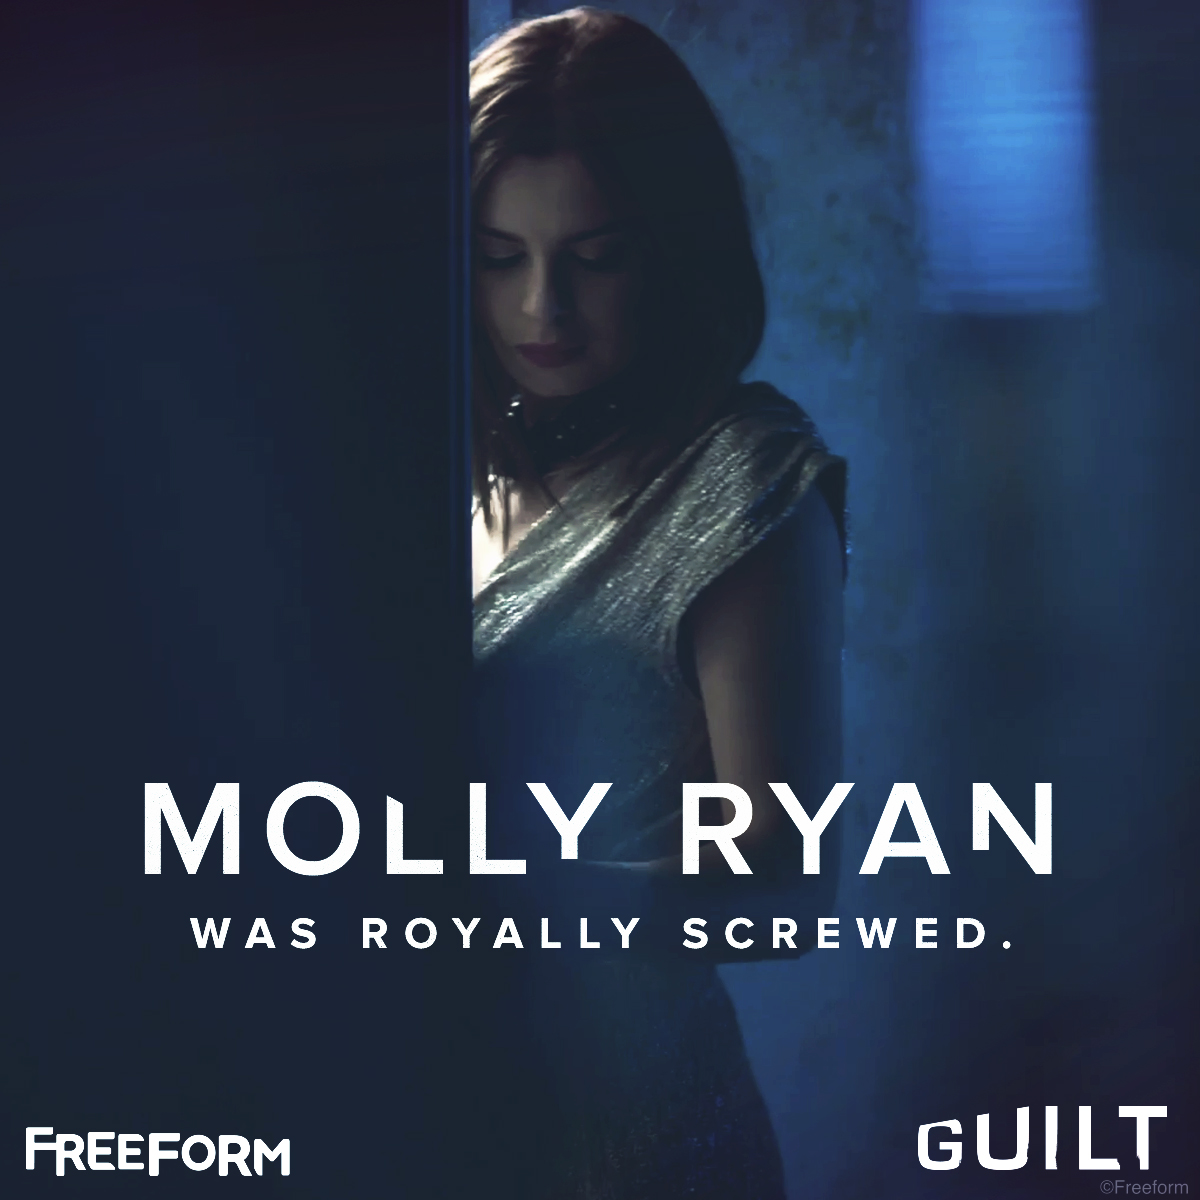 Guilt - Check Out These 3 Facts About Molly Ryan! - 1013